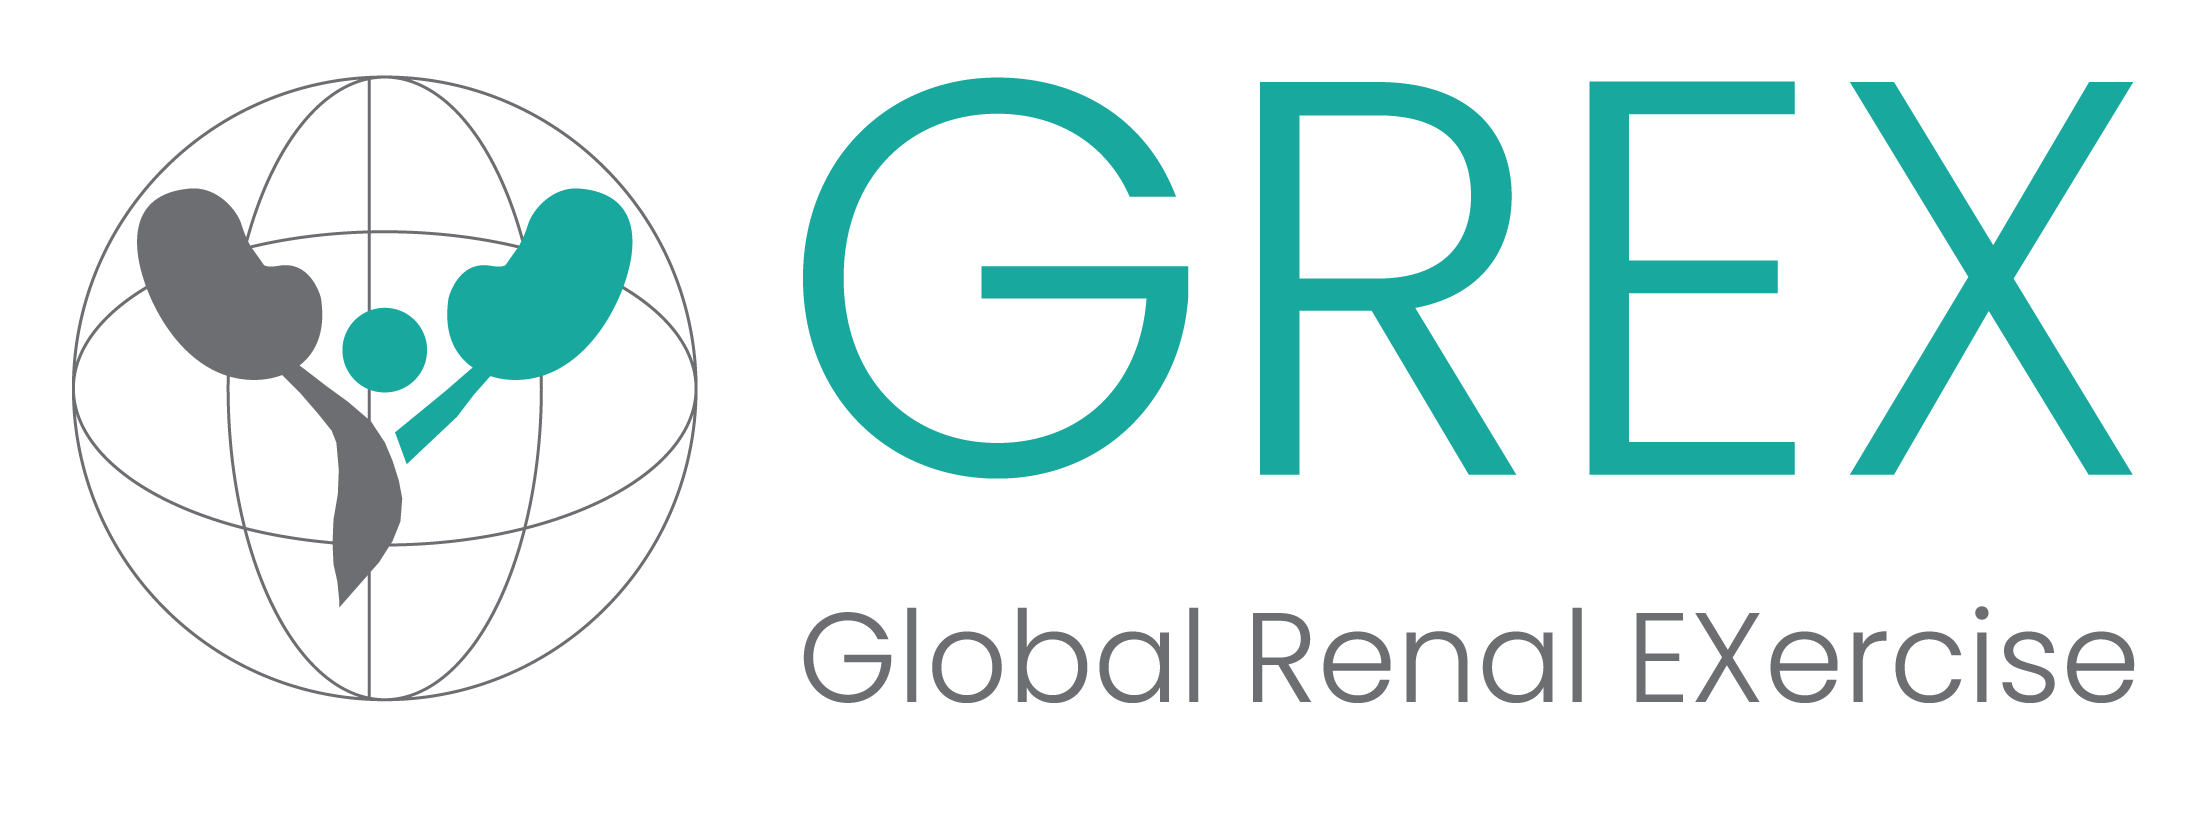 logo of sphere with kidneys inside and text reading GREX Global Renal Exercise